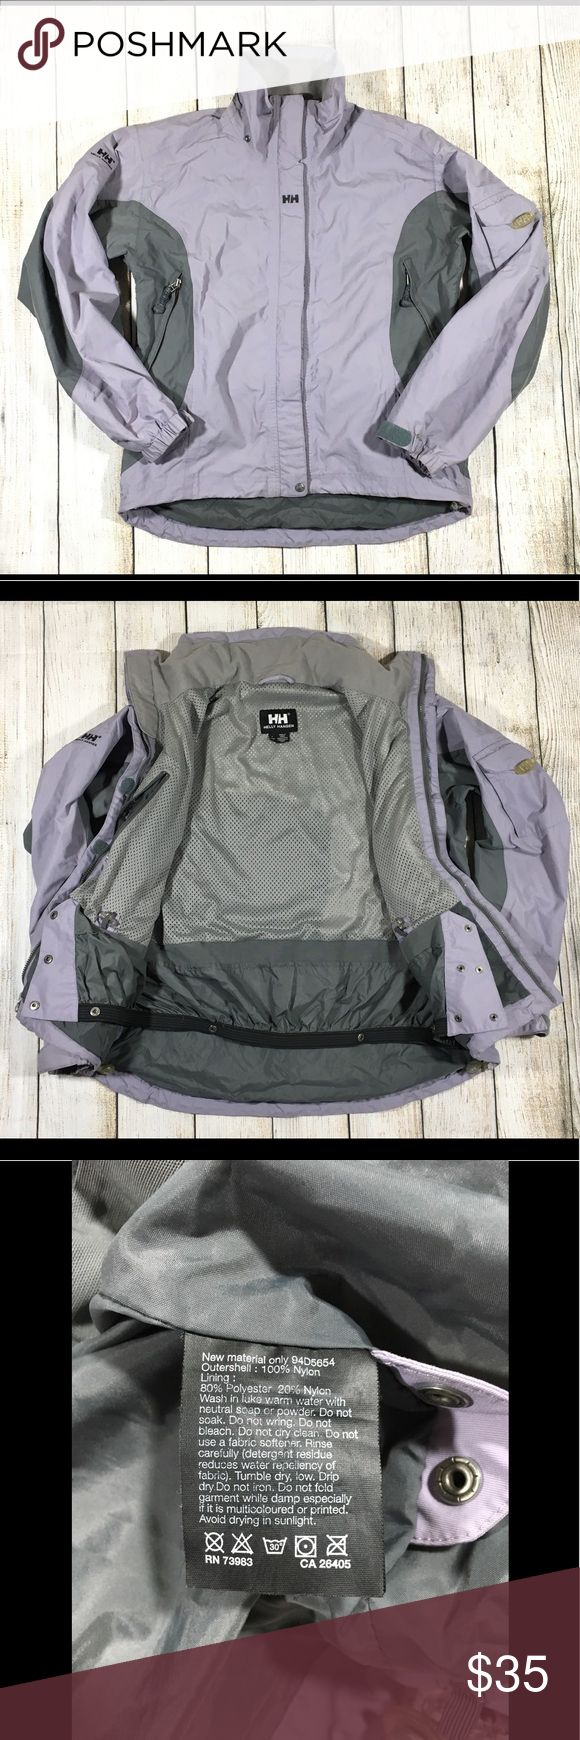 "Women's Waterproof Winter Snow Jacket Coat L Helly Hansen Tech  Womans  Winter Jacket Coat   Waterproof Snow Ski  purple Gray  Size: L Great pre-owned condition, but -- No hood! Measurements taken laying flat: Chest: 24"" Sleeve length from collar: 31"" Sleeve length from armpit: 24"" Overall length: 25"" Bottom width: 22.5"" Helly Hansen Jackets & Coats"